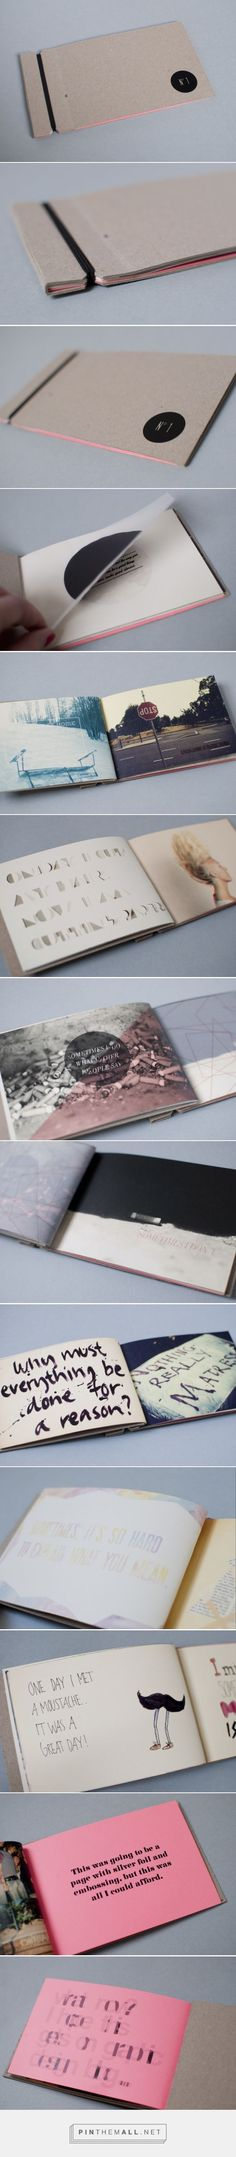 N°1 - Visual Diary By Josefin Holgersson More #BooksBinding